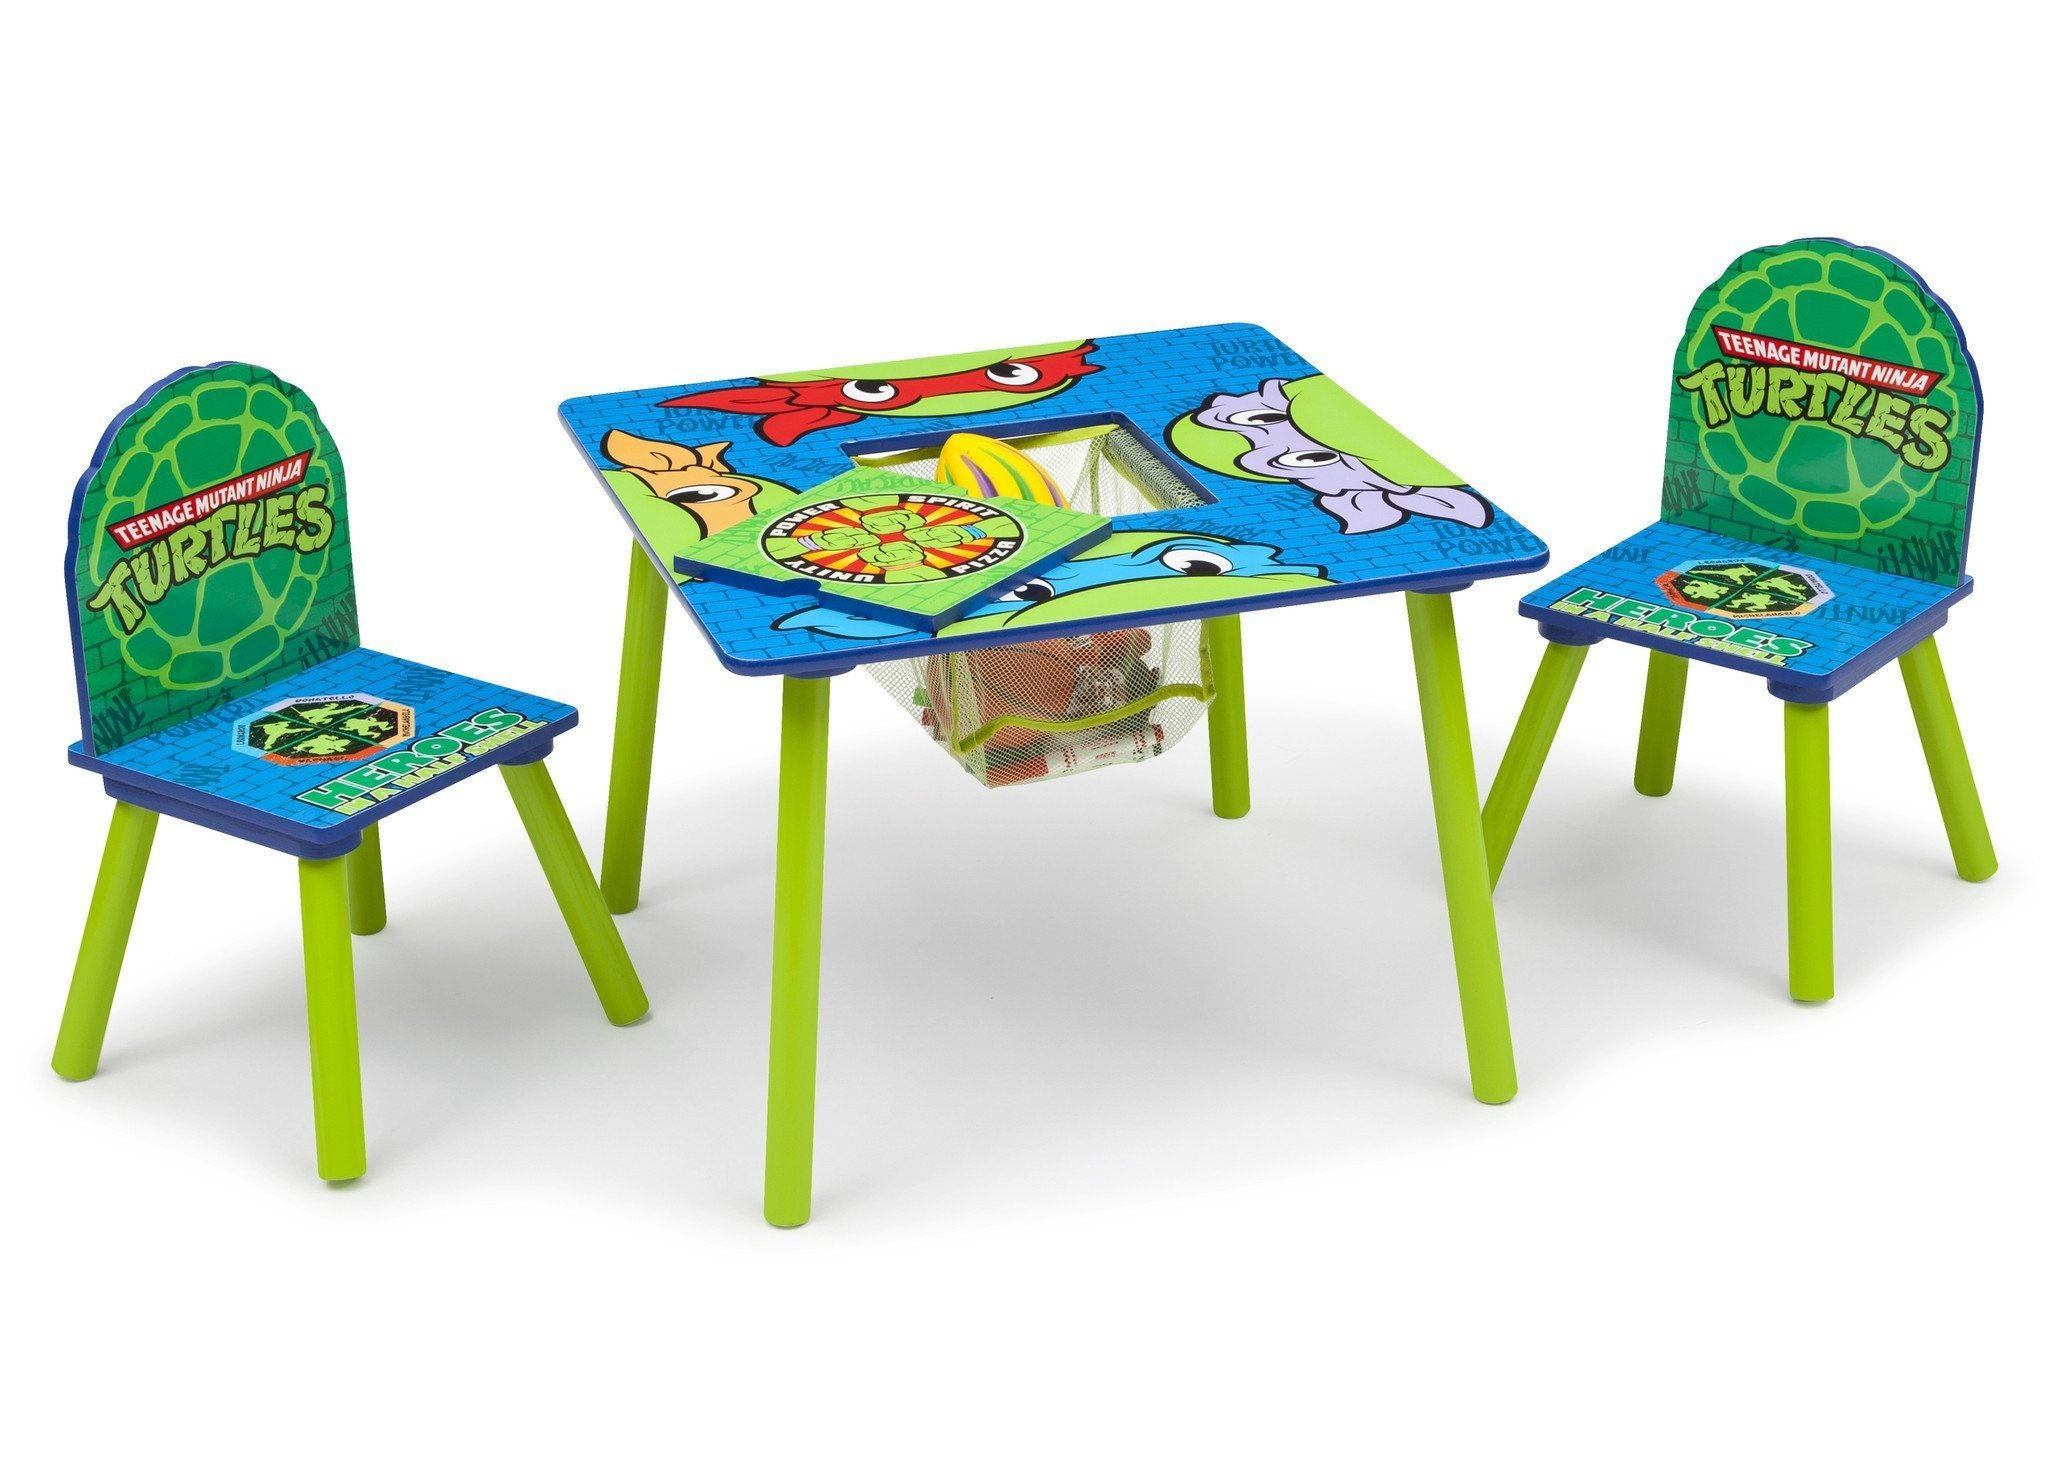 Delta Children Teenage Mutant Ninja Turtles Table & Chair Set w/ Storage, Right Side View with Storage 2 a1a